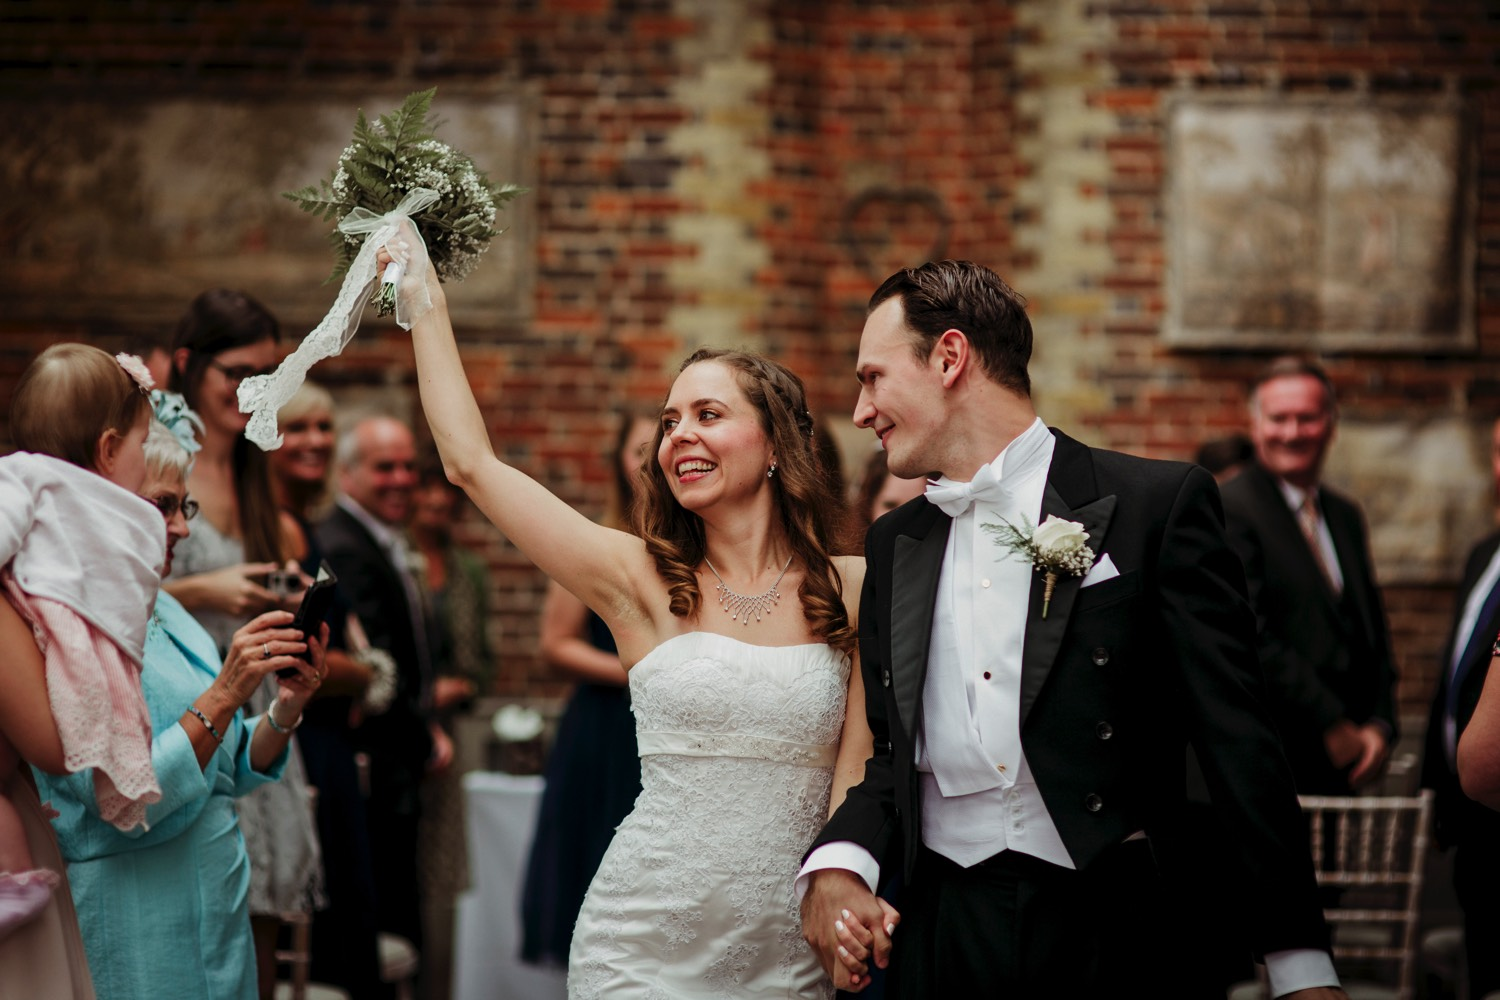 Wedding at Offley Place Country House Hotel